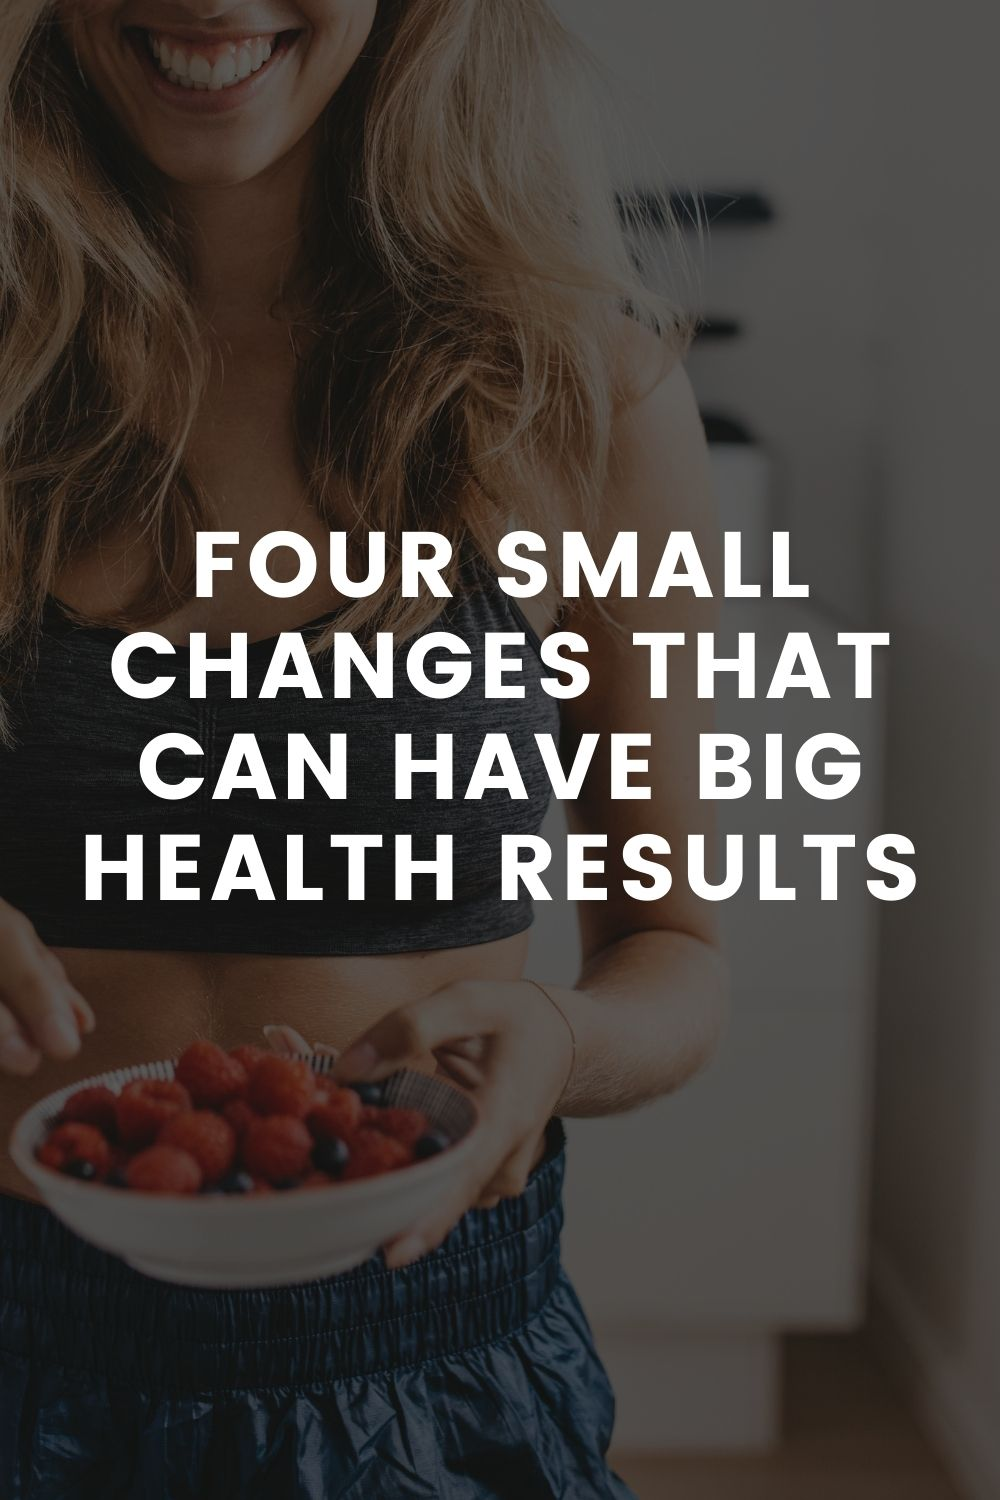 Four Small Changes That Can Have Big Health Results